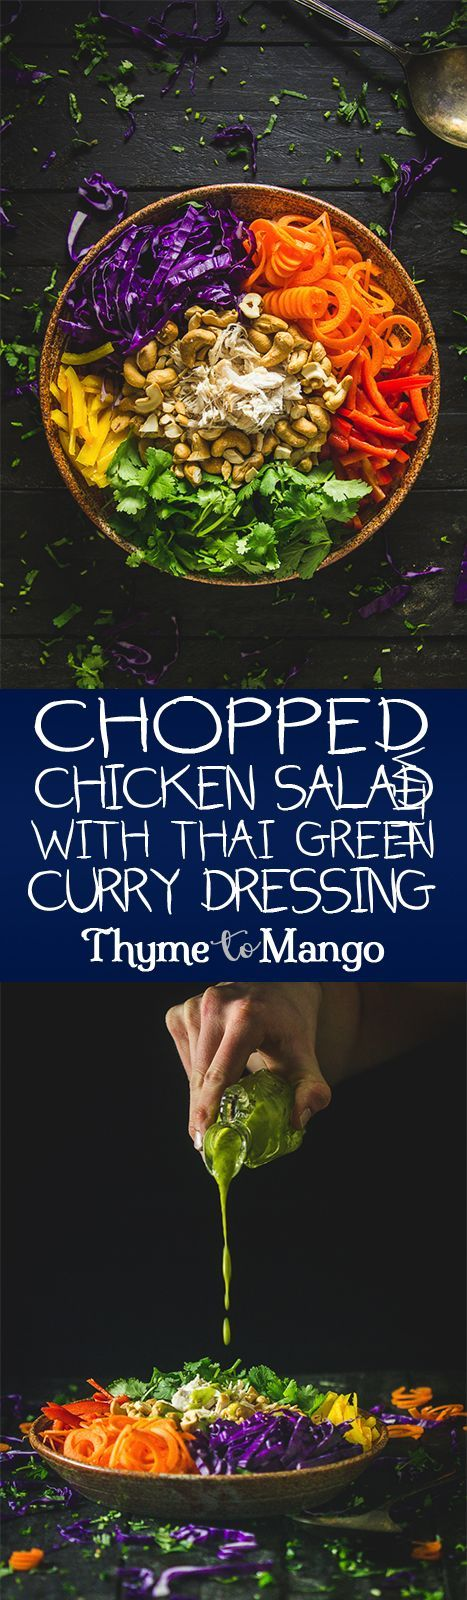 Satisfy all your salad cravings with this Chopped Chicken Salad; bursting with flavour and drowned in a tasty Thai green curry dressing